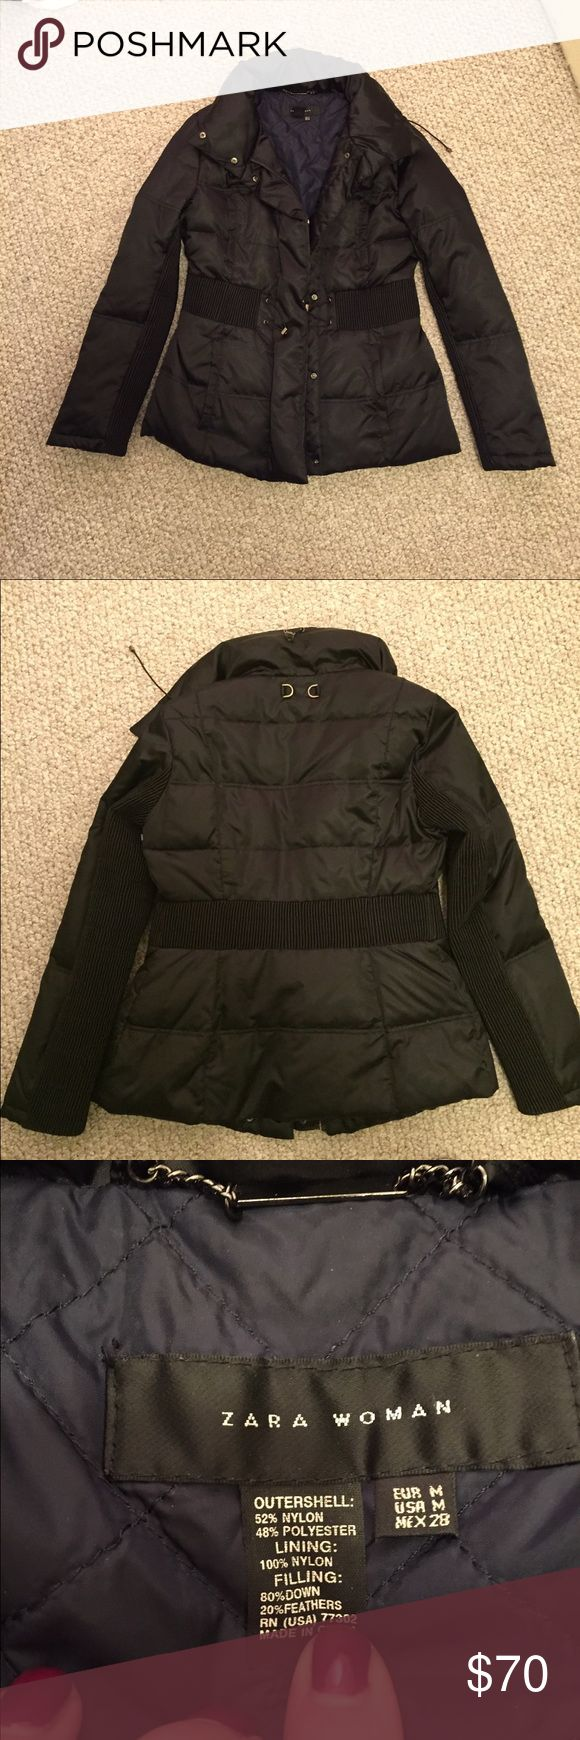 """Zara Woman puffer coat nwot . Size m Beautiful Zara puffer coat. 26"""" in length with 4 pockets in front. Snap and or zipper closet. Black with navy colored liner. Has elastic pulls on sides to cinch the waist. Very cozy and stylish. Fits true to size. I'm a size 8 and it fits perfect. I just have too many coats. Please no low balls! Zara Jackets & Coats Puffers"""